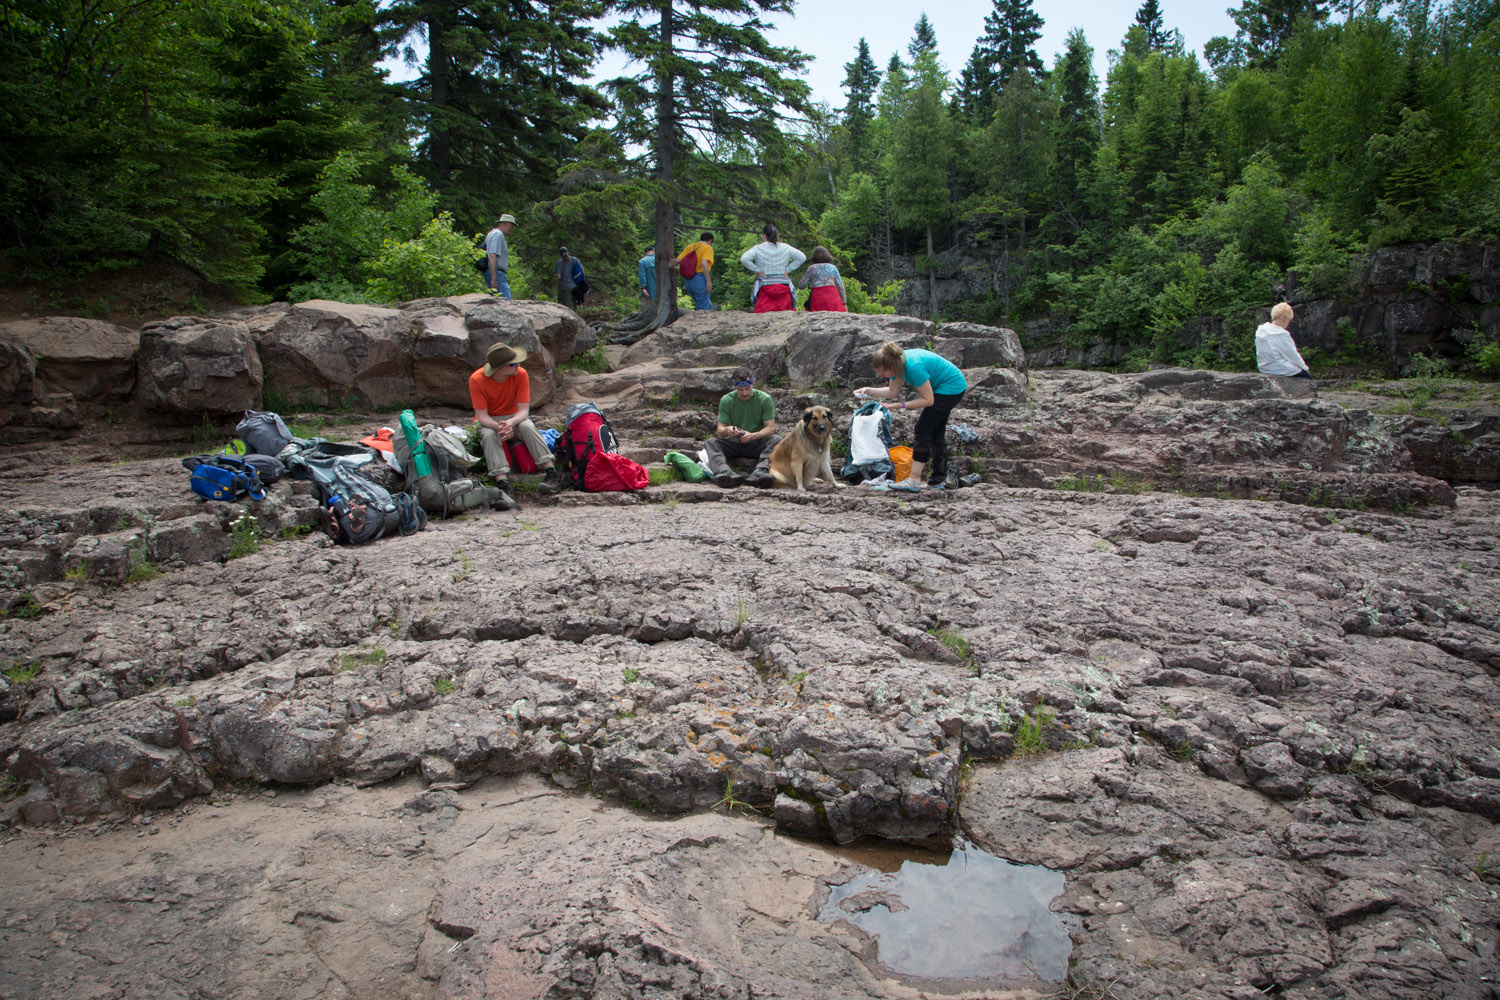 We parked our dirty selves on the rocks of the temperance river right in the middle of the tourists and ate our lunch.